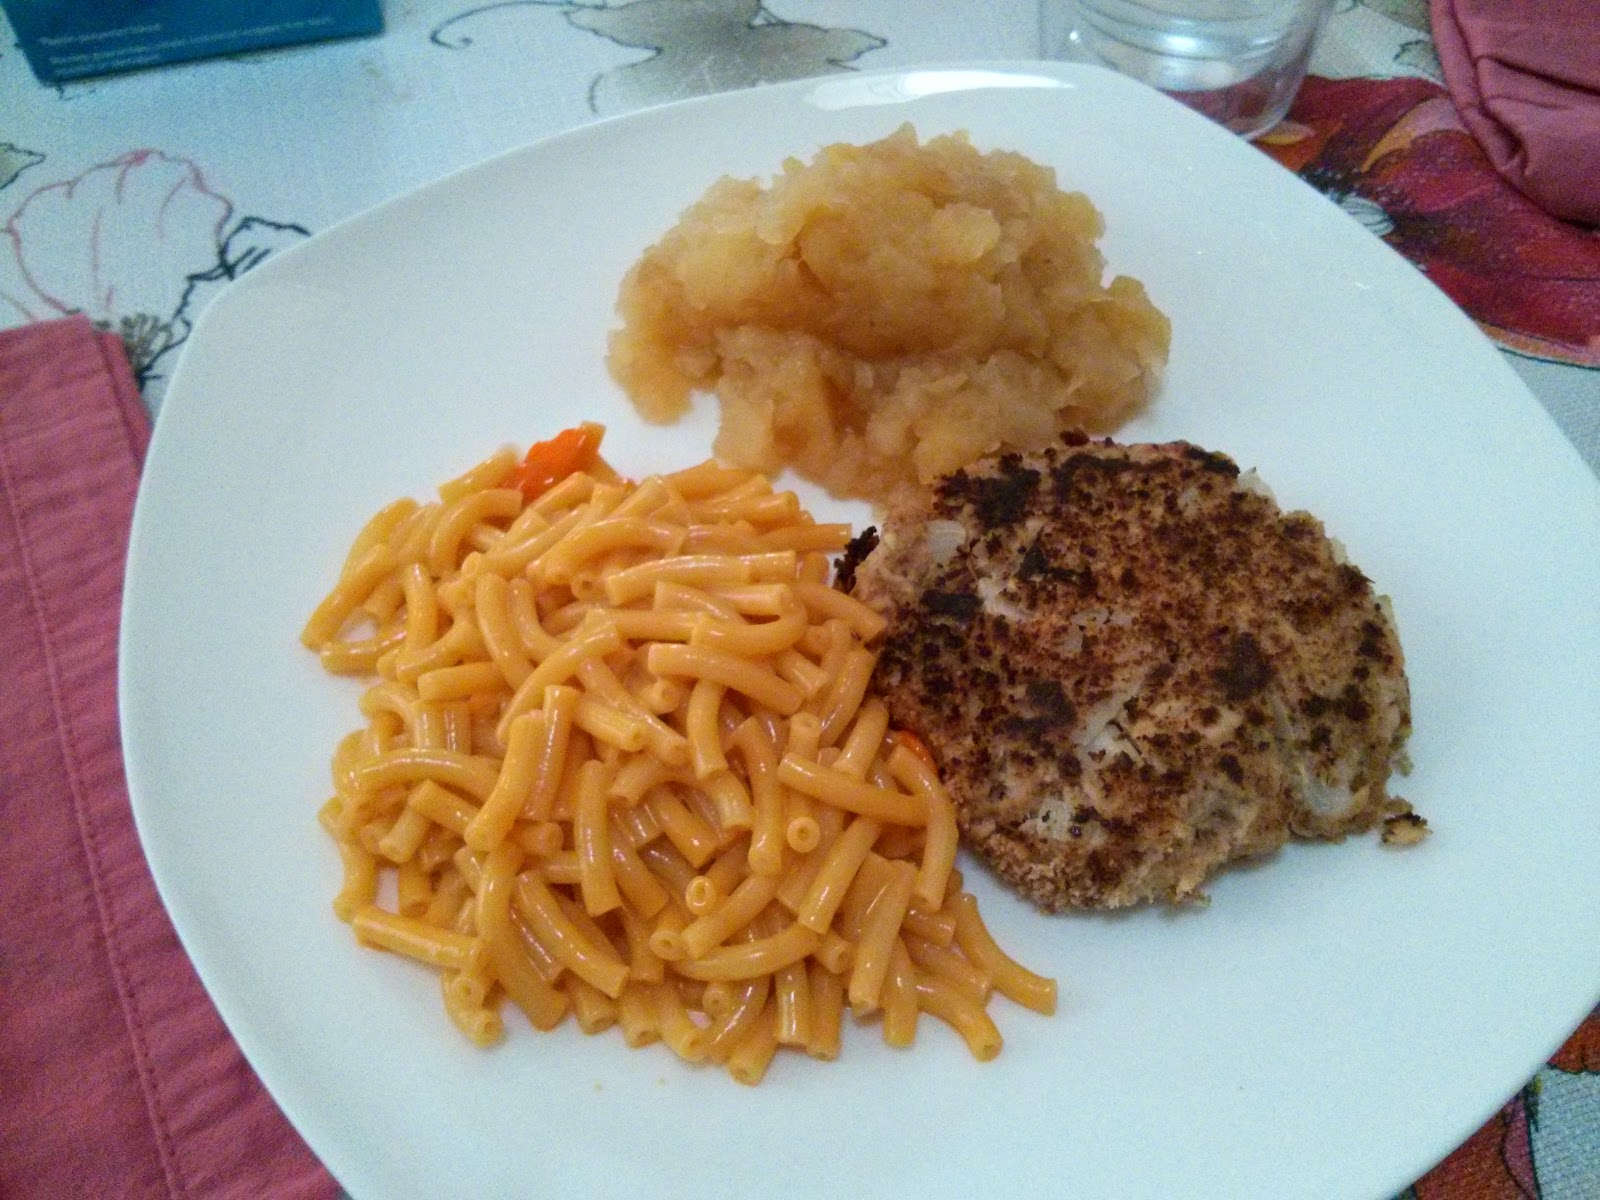 Then The Next Night I Made Macaroni And Cheese Applesauce Salmon Cakes Patrick Commented That Fixed Him All His Favorite Things